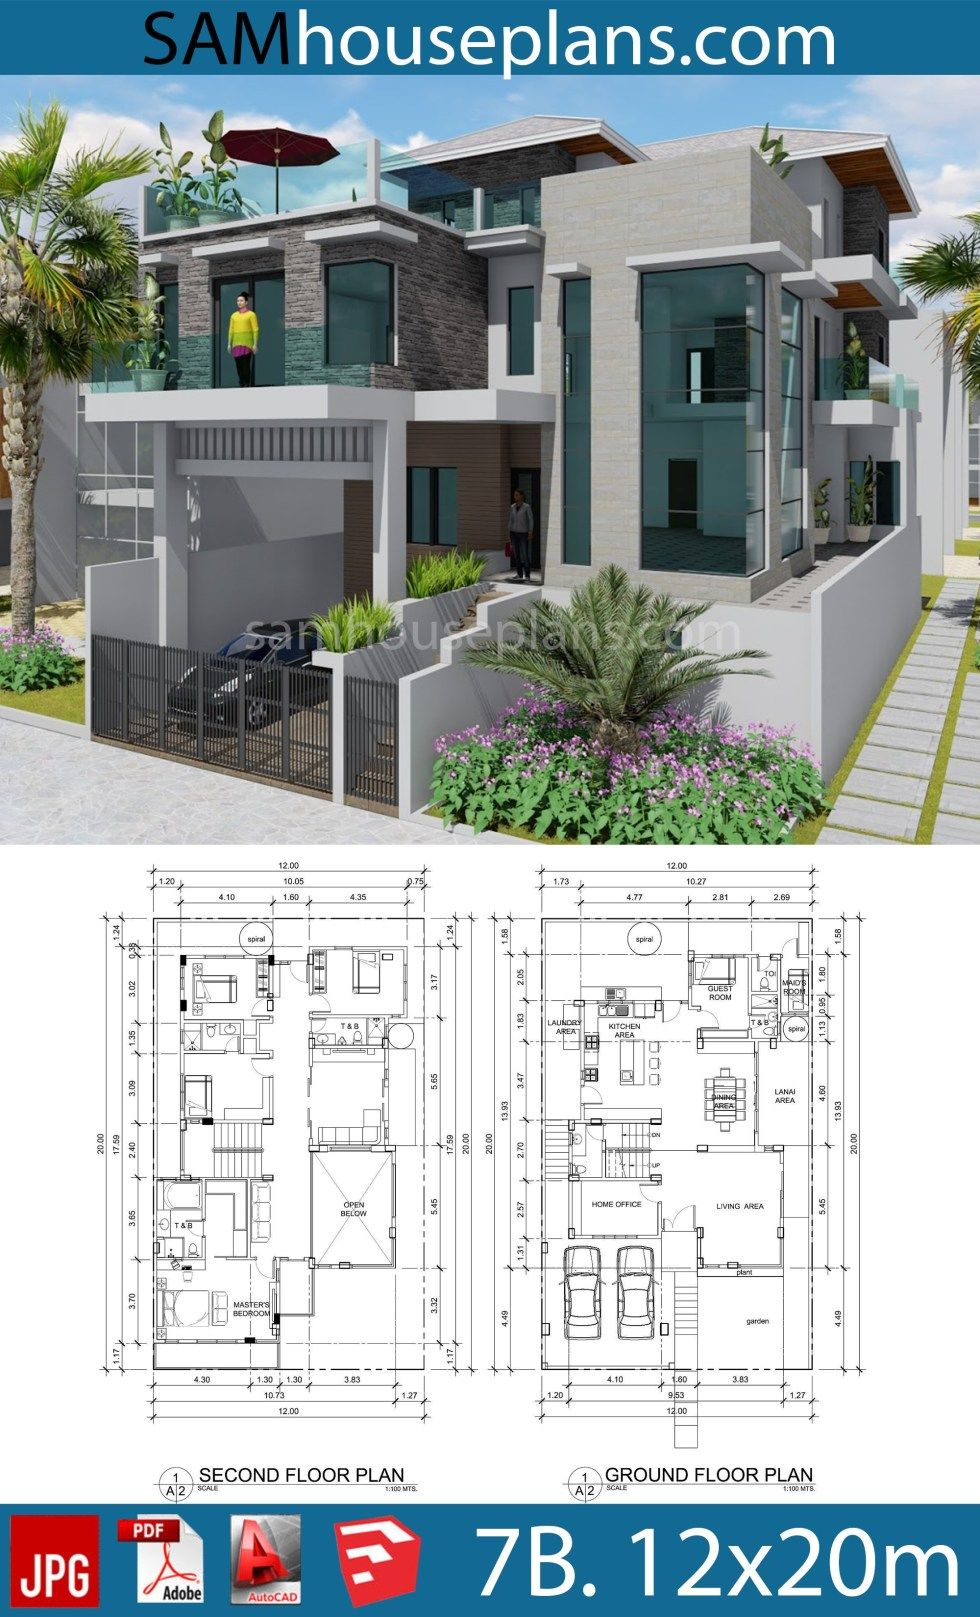 House Plans 12mx20m with 7 Bedrooms | Architectural house ... on seven bedroom ranch floor plans, six bedroom floor plans, 3 bedroom house floor plans, southern house plans, 6 bedroom open floor plans, 9 bedroom house plans, 8 bedroom house floor plans, castle mansion house plans, 10 bedroom house floor plans, 18 bedroom house floor plans, 2 bedroom 2 bath house plans, 7 bedroom house with pool, 5 bedroom house floor plans, 6 bedroom 1 level floor plans, 6 bedroom modular home plans, 15 bedroom house floor plans, outdoor furniture floor plans, 7 bedroom floor plans open, 20 bedroom house floor plans,